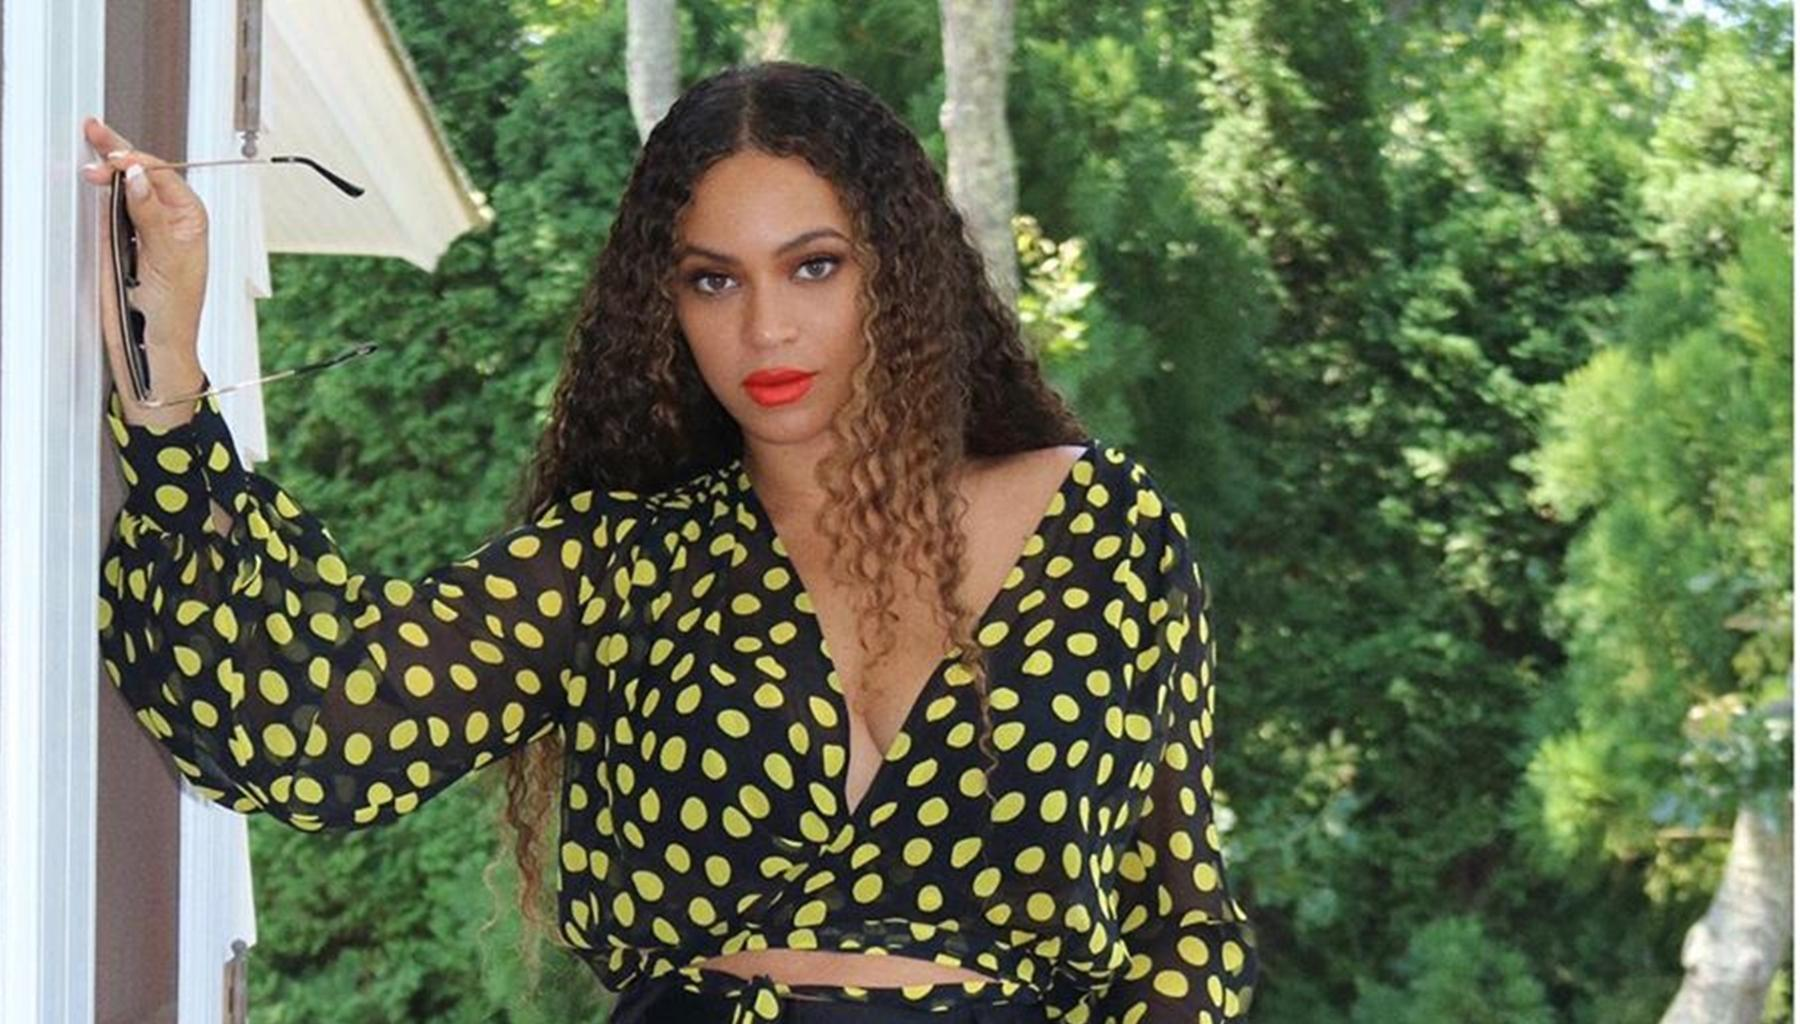 Beyonce Has Fans Ecstatic After Doing Something She Rarely Does On Social Media, Jay-Z's Wife Is Breaking All Her Rules